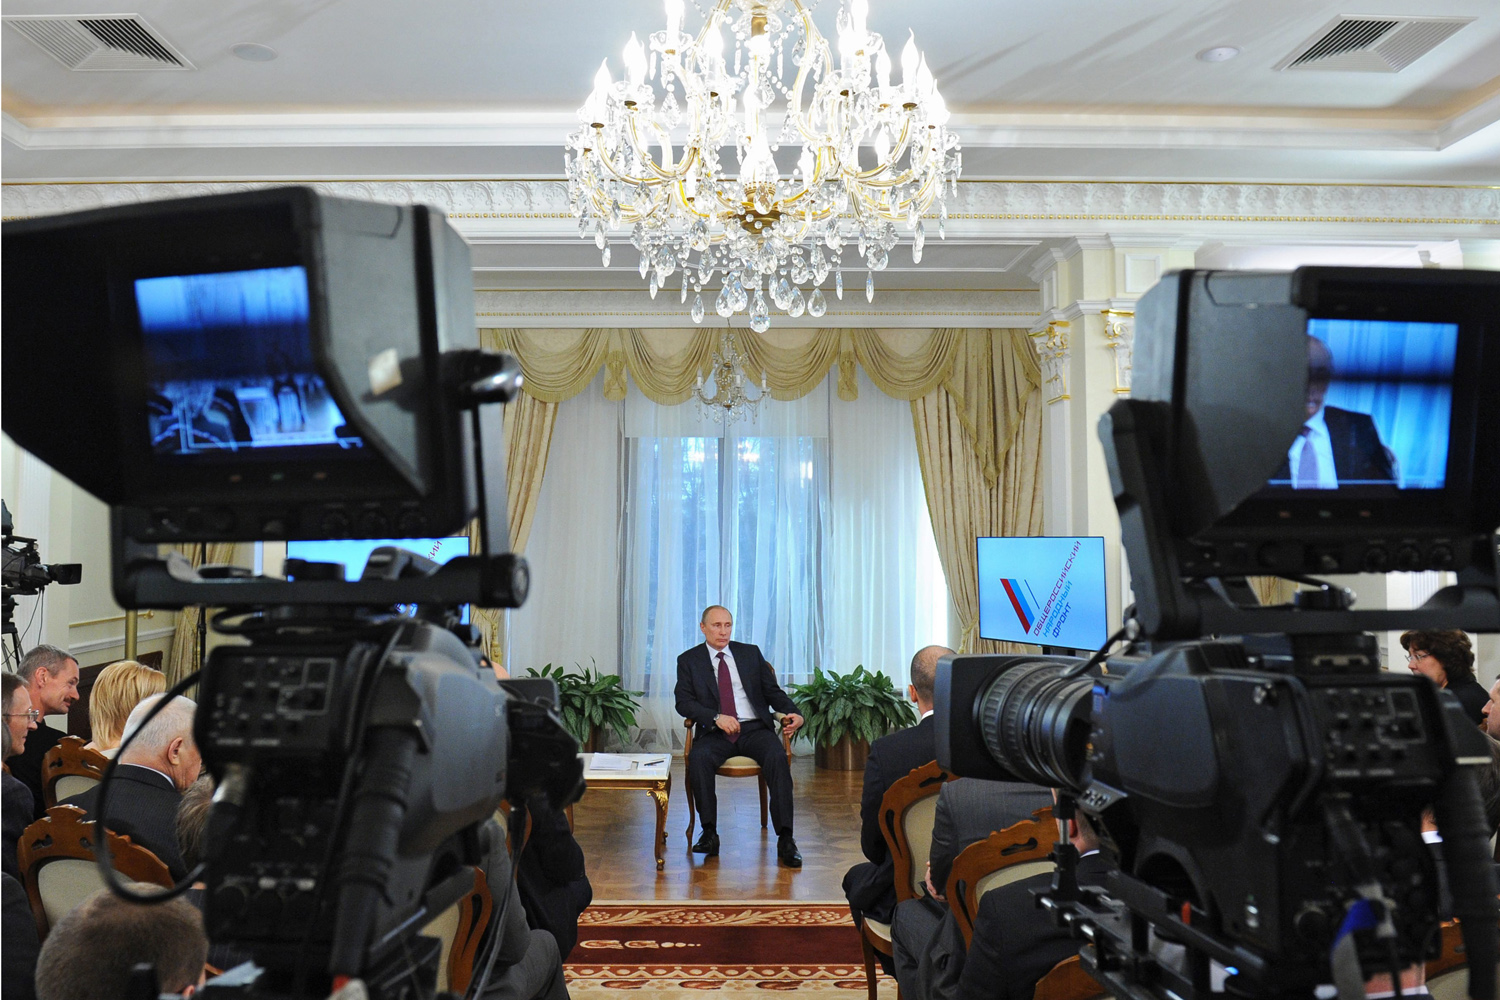 Apr. 10, 2014. Russian President Vladimir Putin speaks with All-Russia People's Front activists during their meeting in his Novo-Ogaryovo residence outside Moscow.